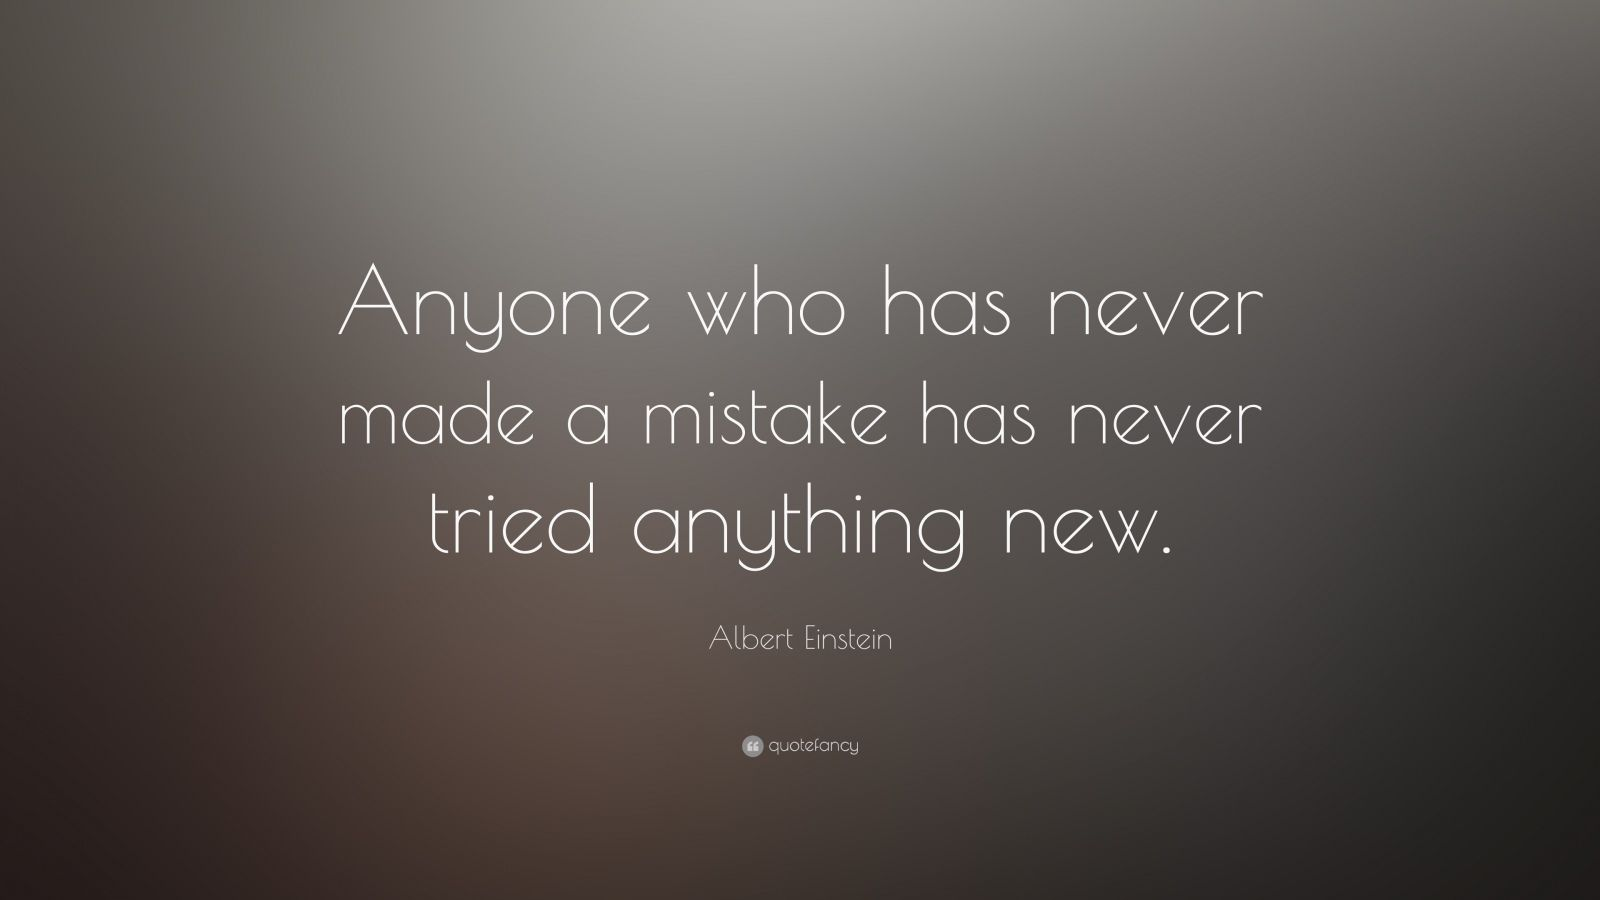 anyone who has never made a mistake has never tried anything new Who has never made a mistake has never tried anything new anyone who has never made a mistake never made a mistake never tried anything new.